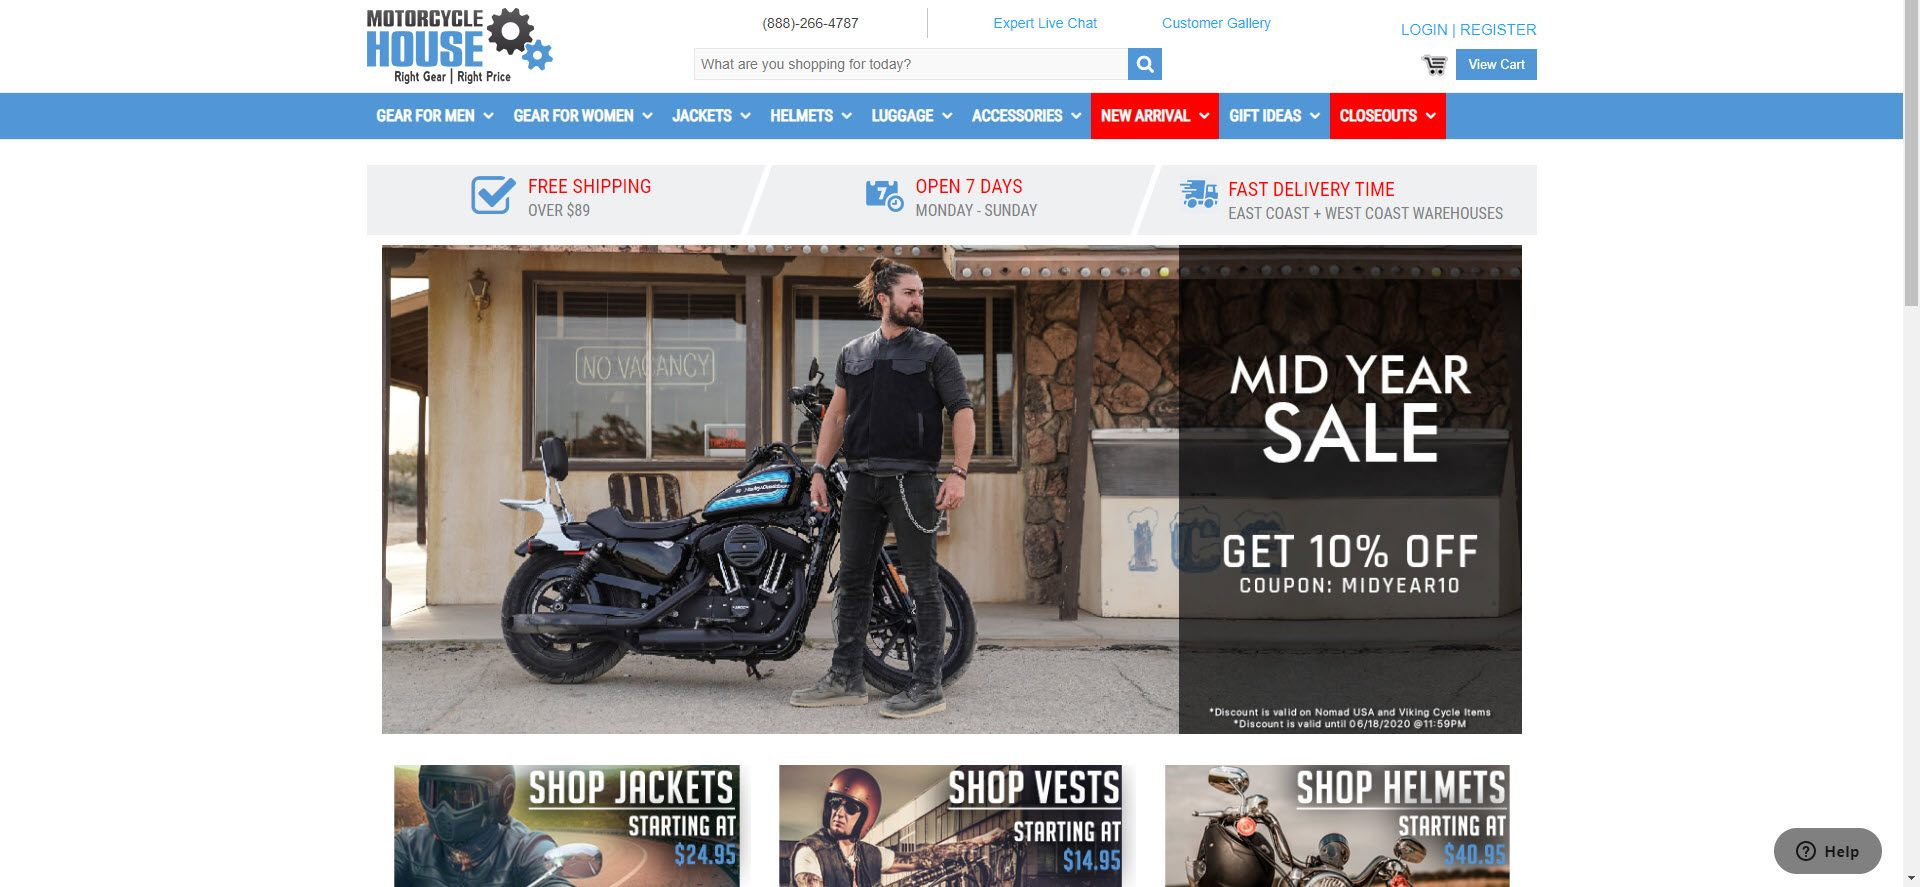 MotorCycle Affiliate Programs - Motorcycle House